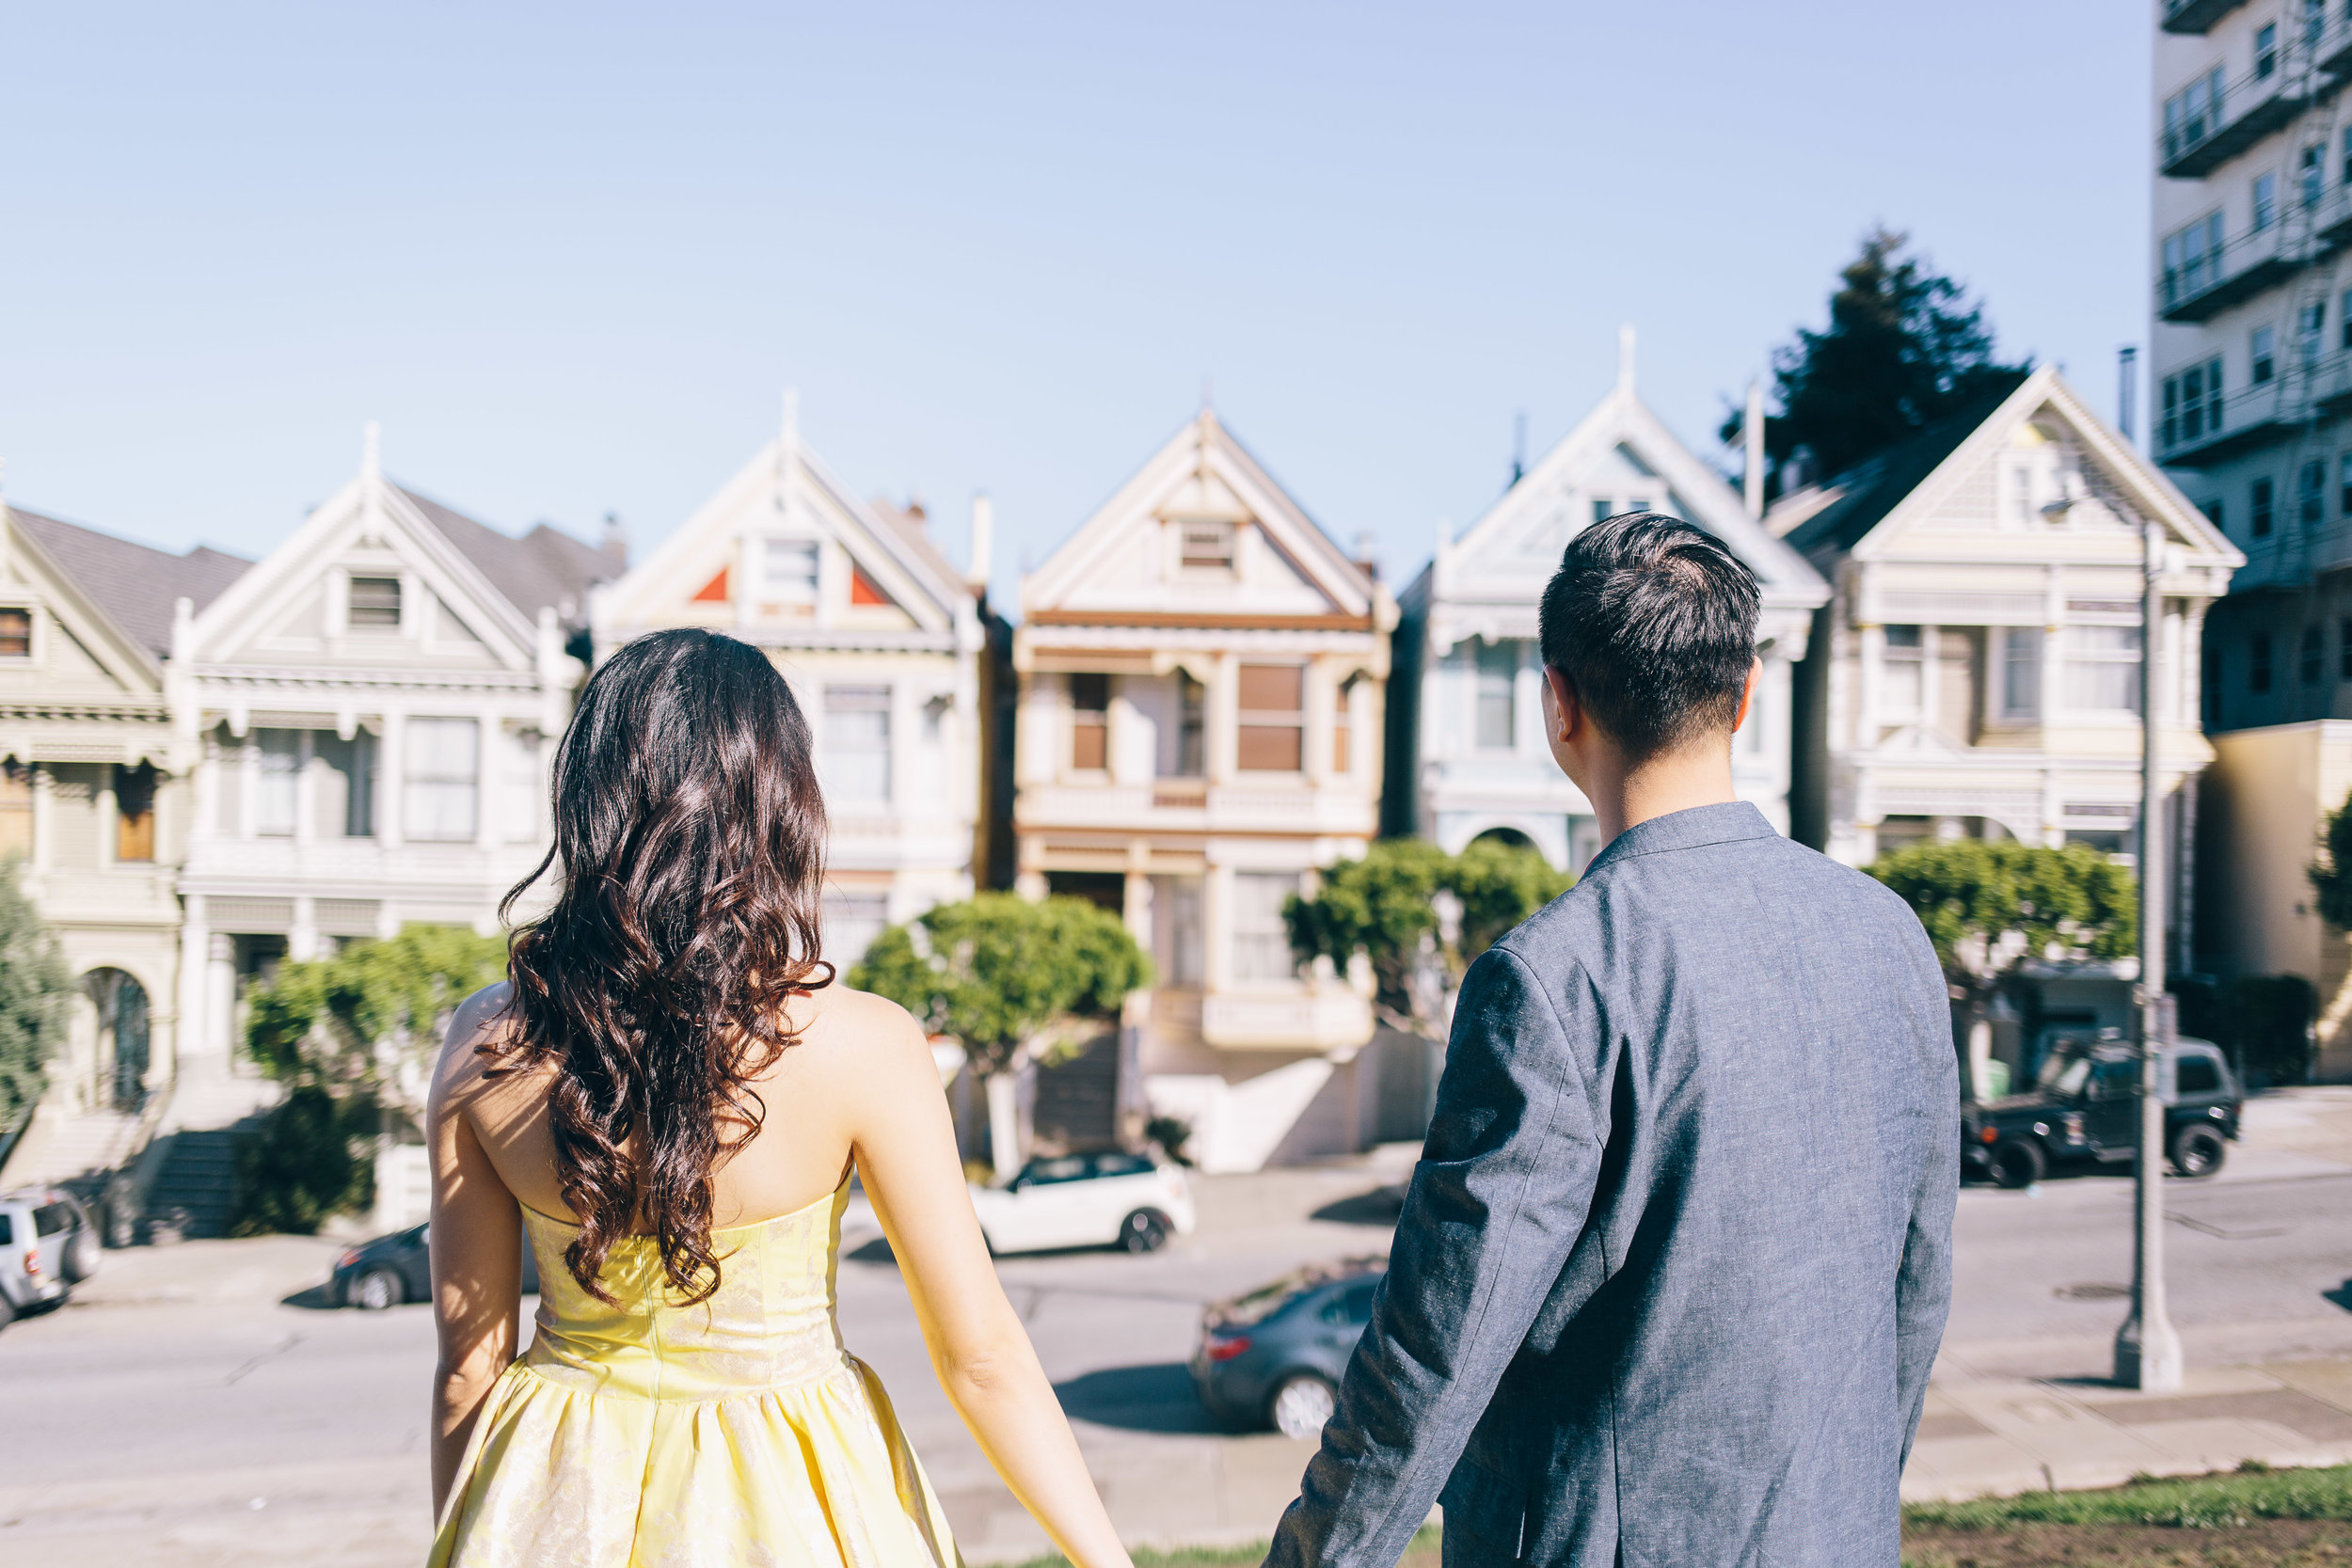 Pre-Wedding Photos in San Francisco by JBJ Pictures Pre-Wedding Photographer, Engagement Session and Wedding Photography in Napa, Sonoma, SF Bay Area (16).jpg